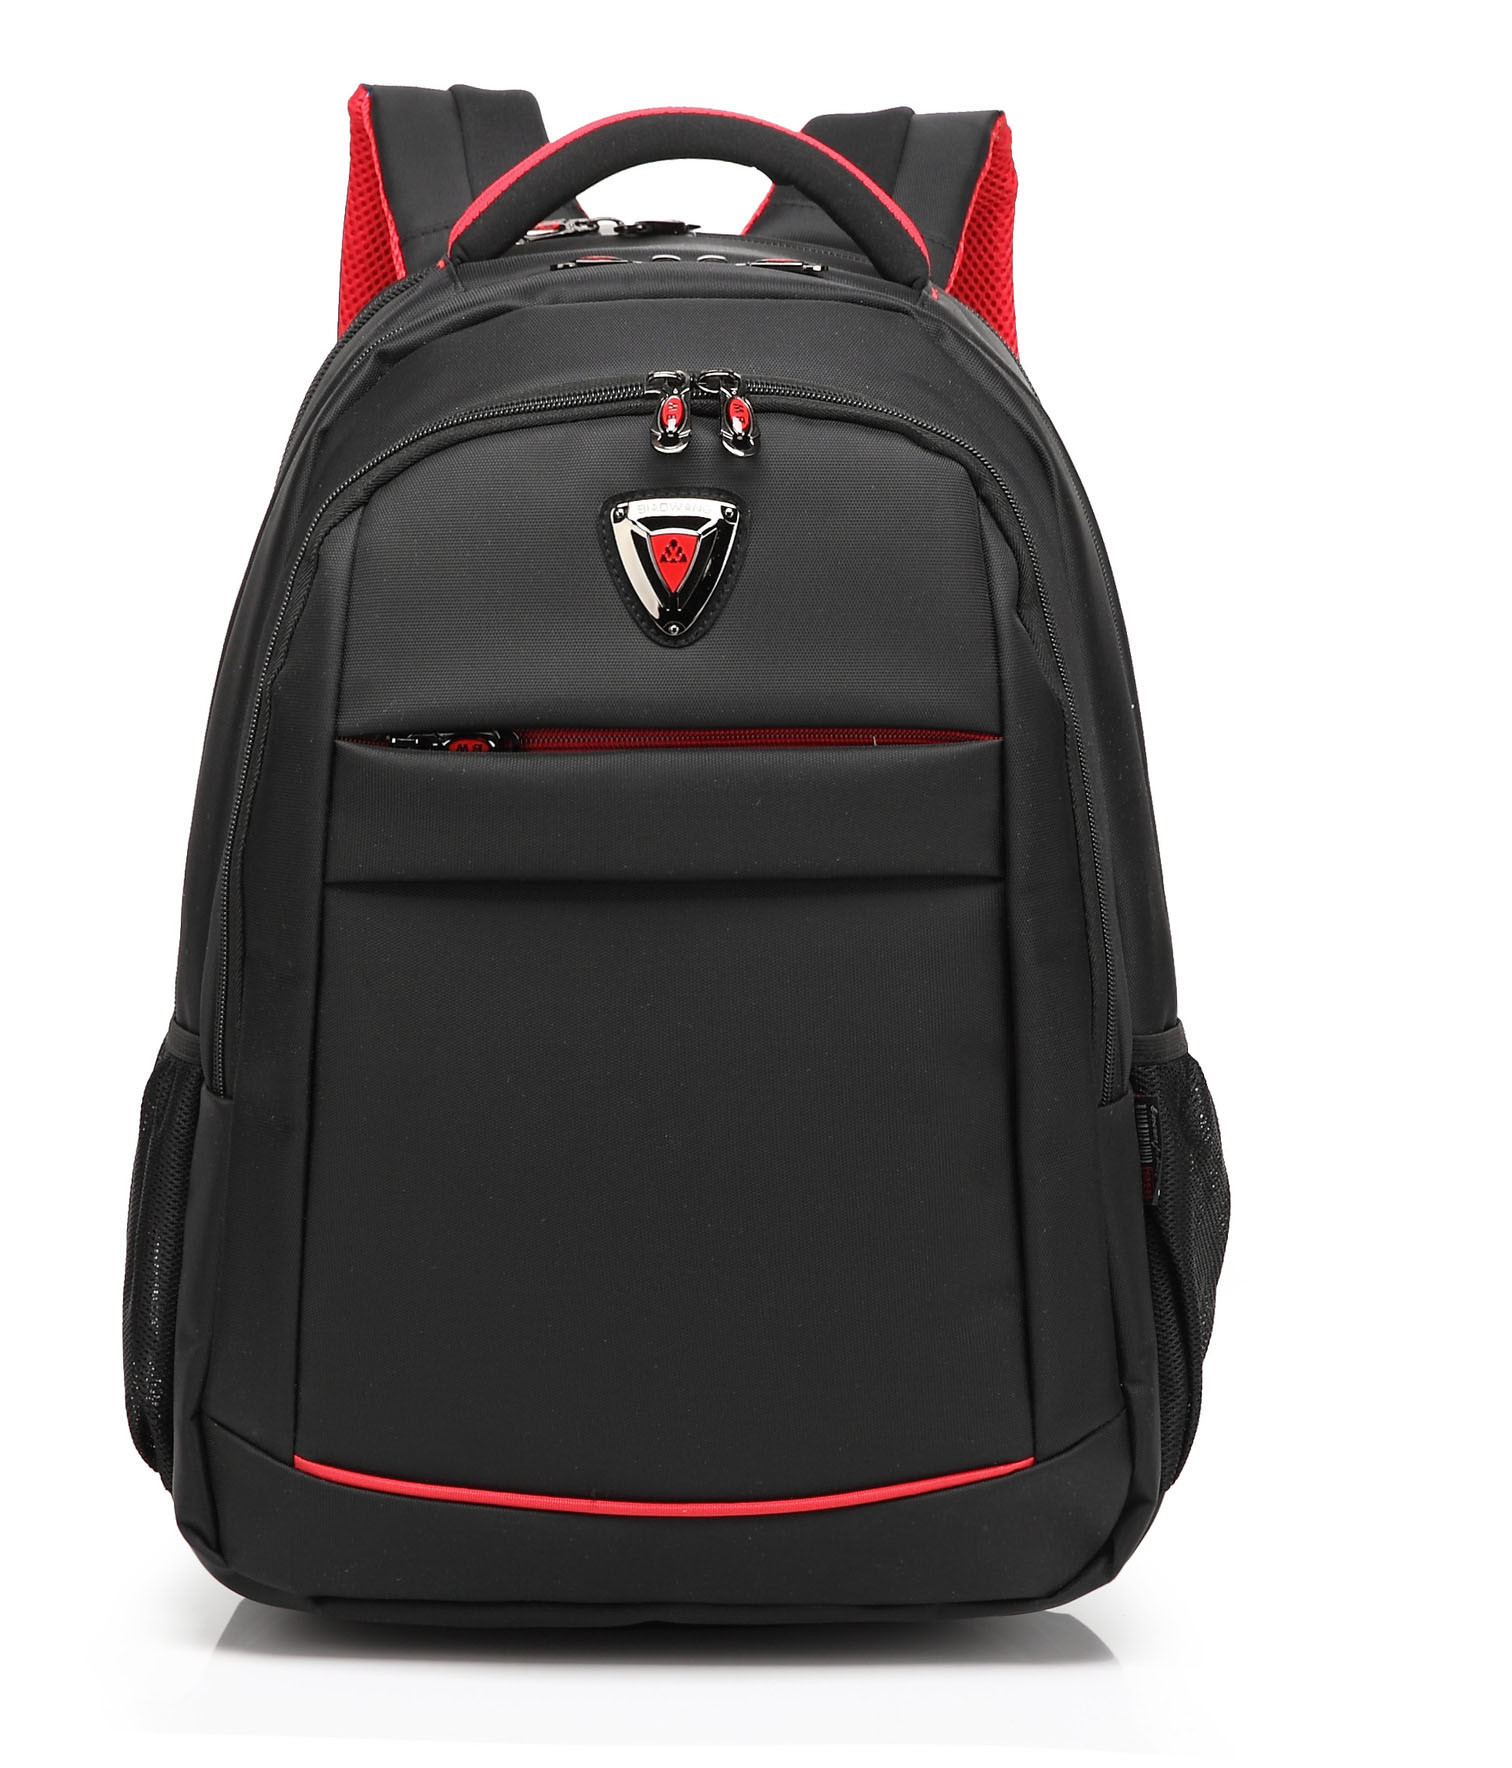 Bag for Laptop, Backpack, Computer, School, Travel, Cooler, Sports, Military